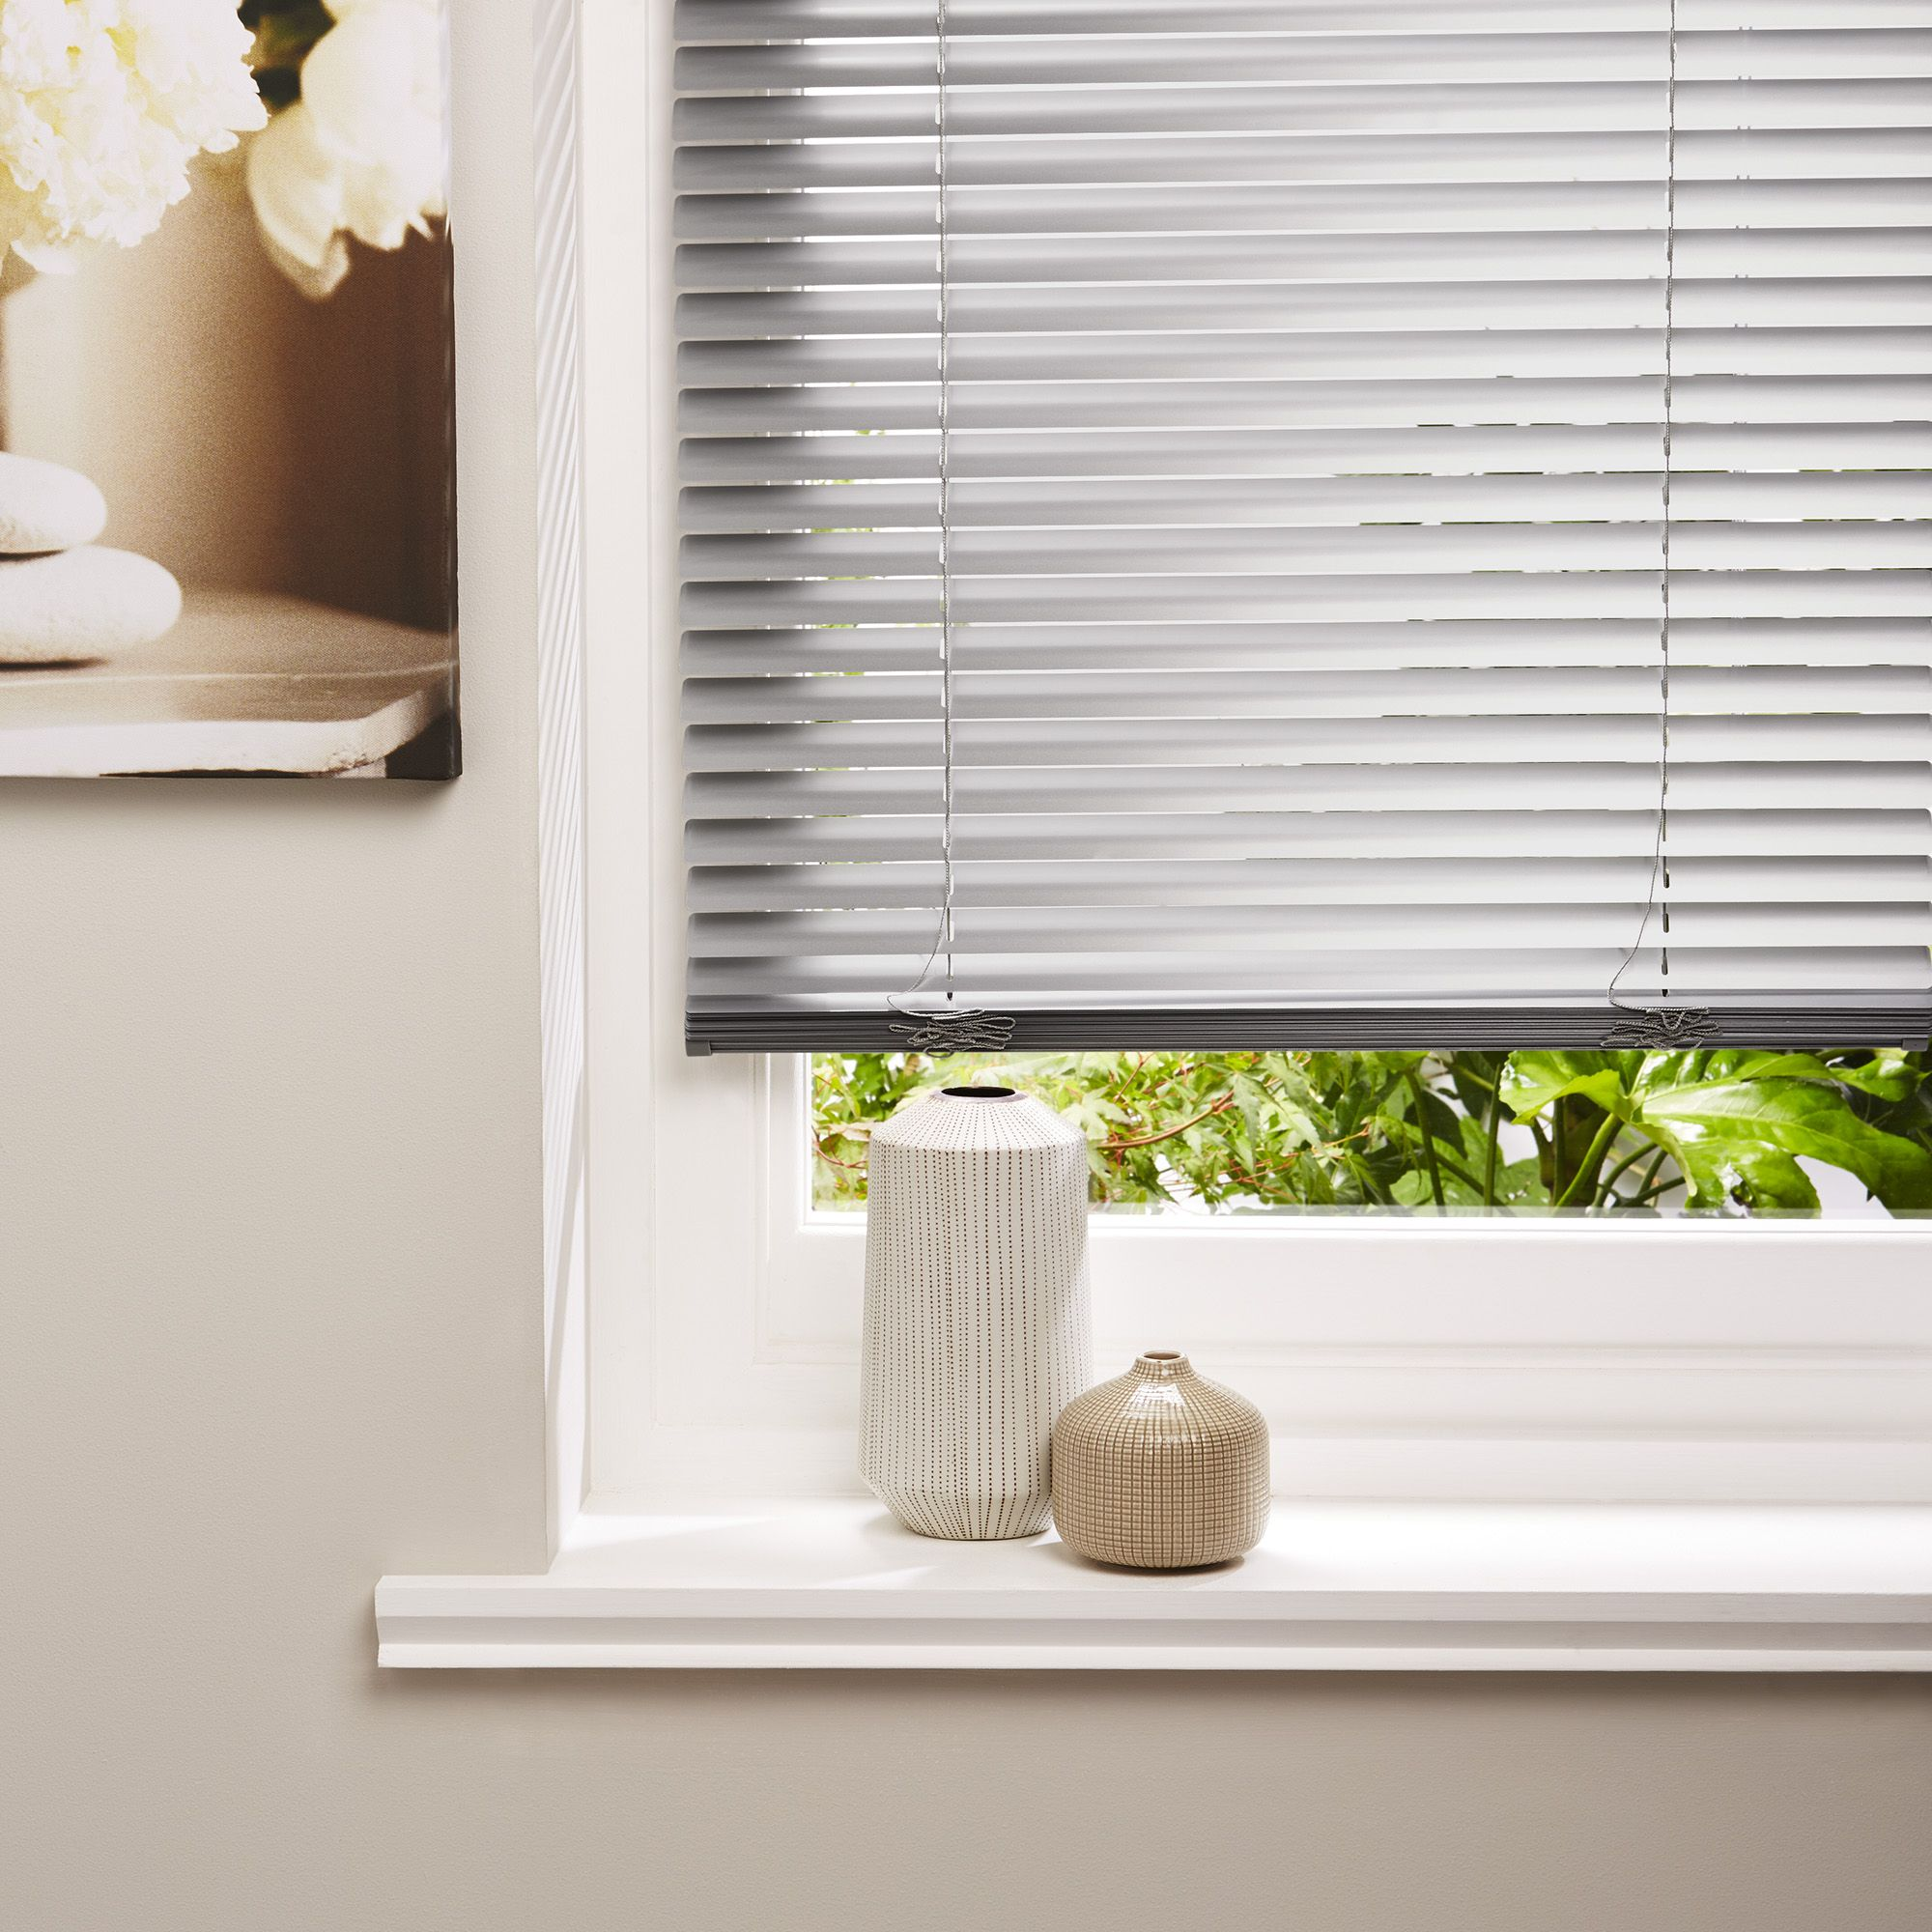 Curtains Blinds Shutters Curtain Poles Roller Blinds DIY